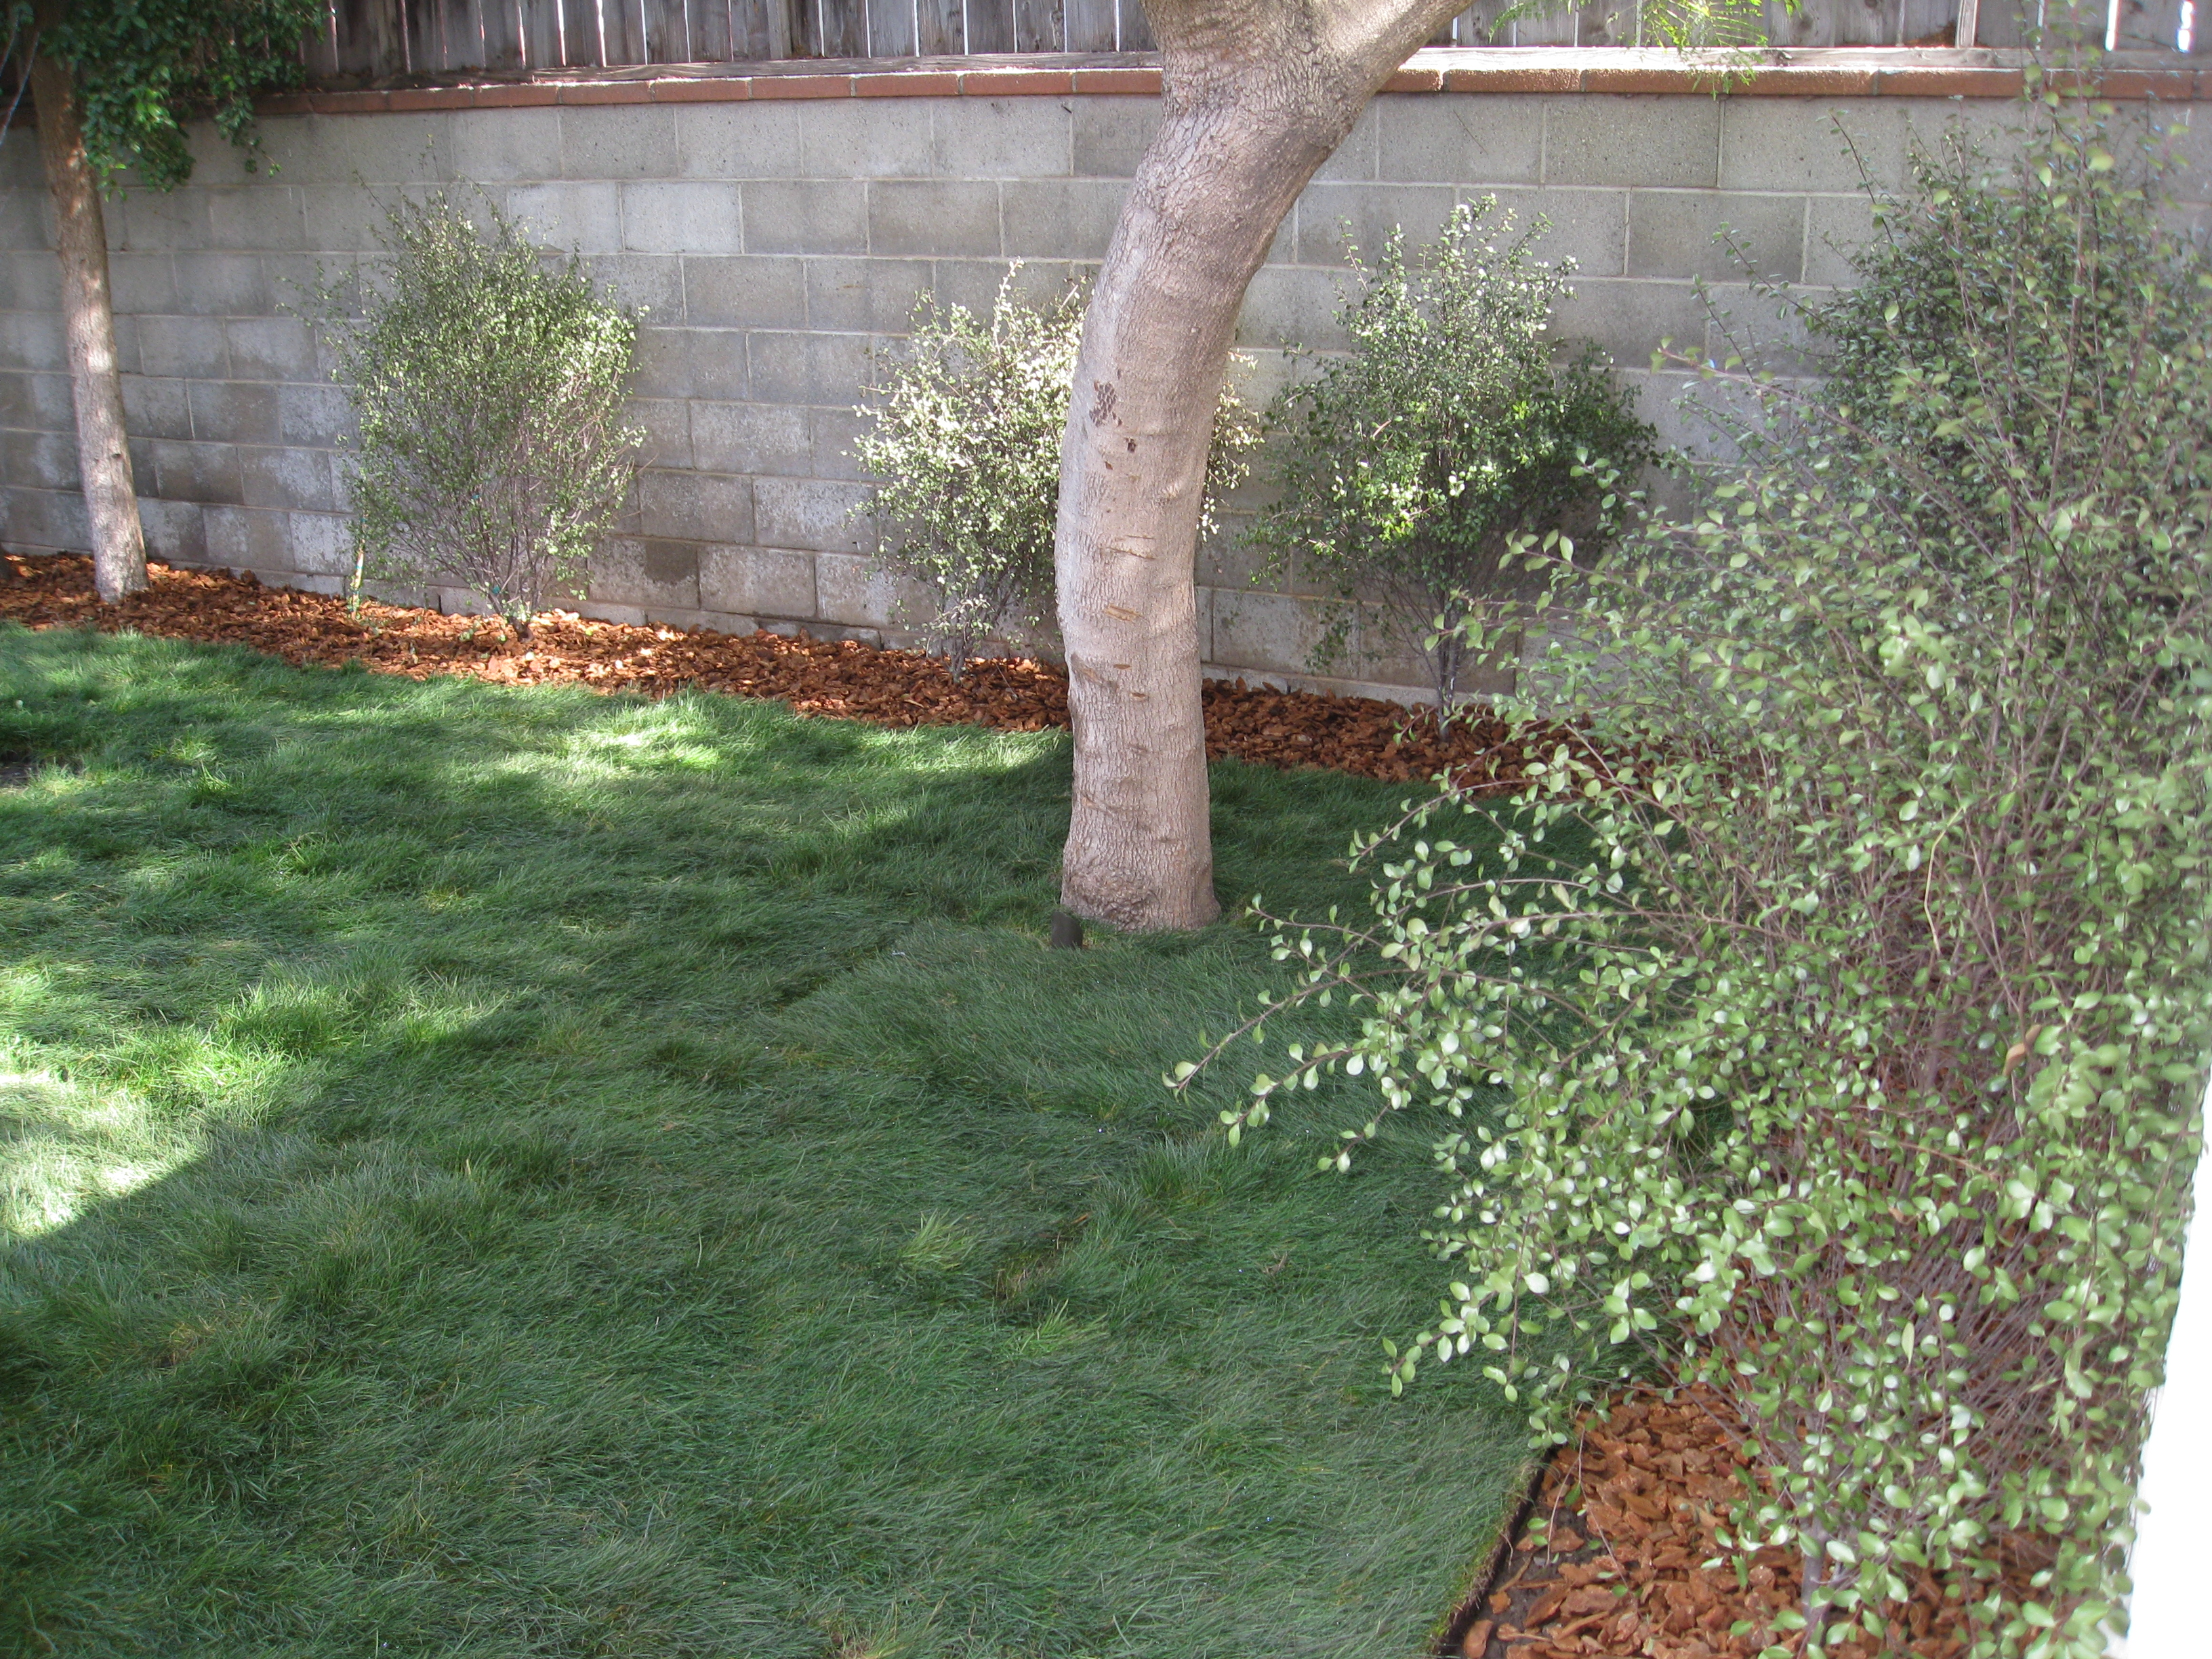 When California native grass sod was just installed.